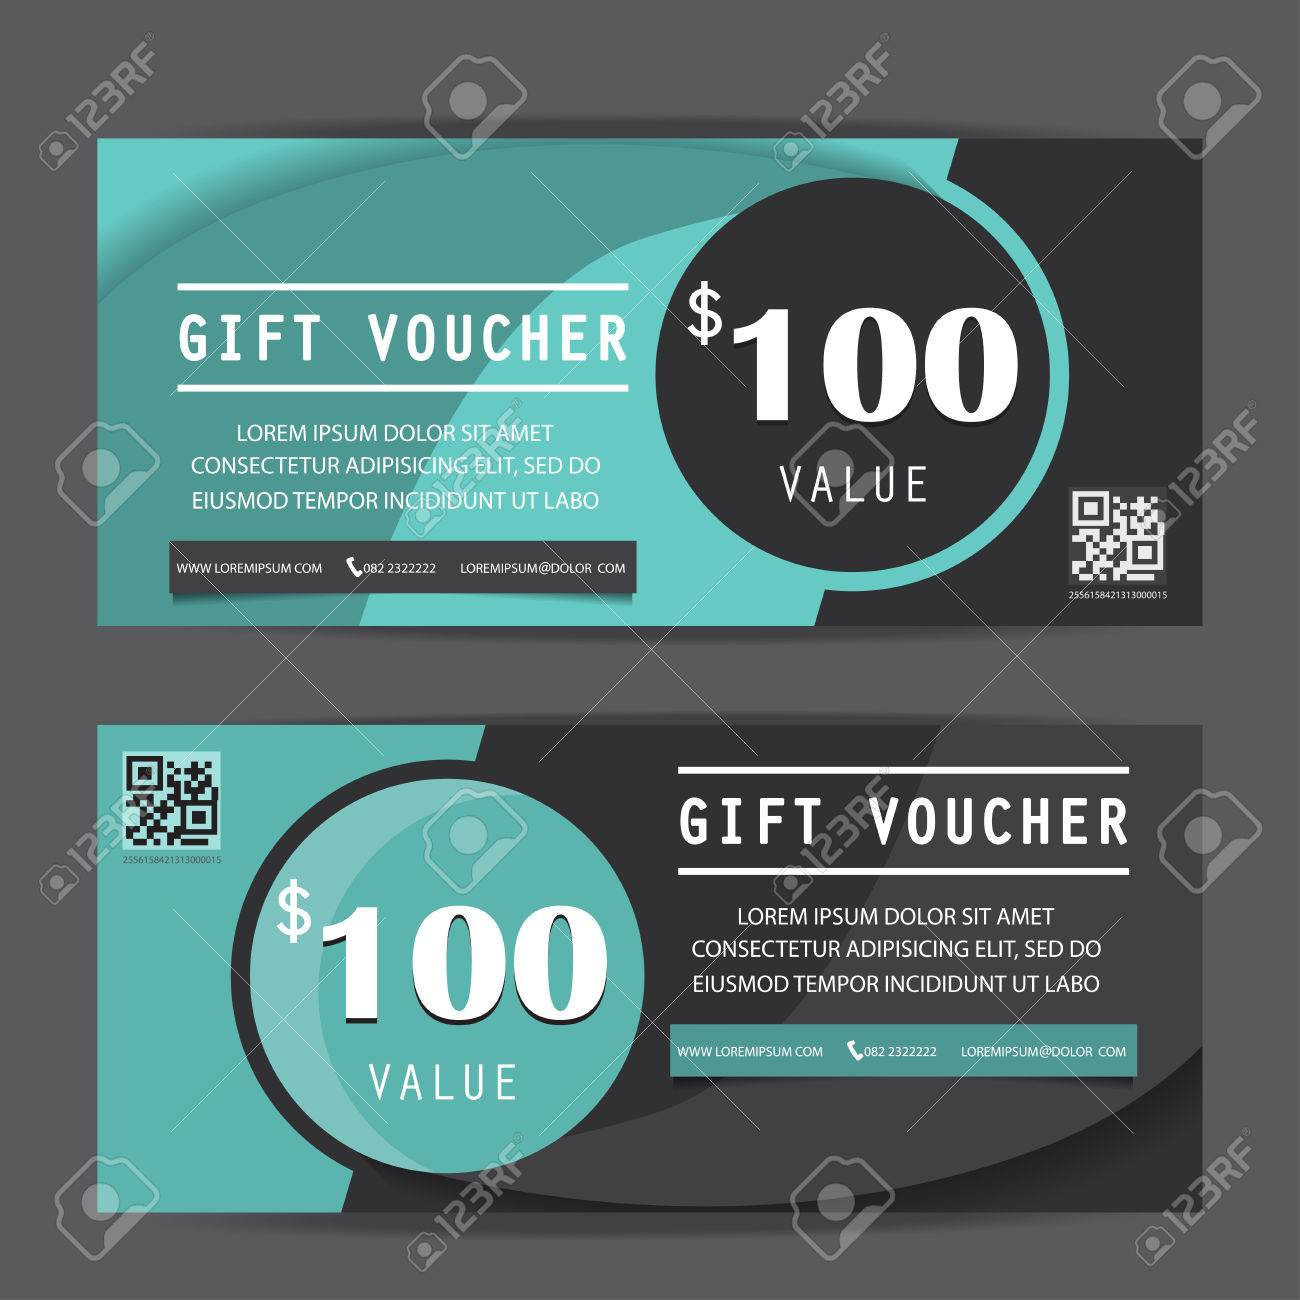 black friday gift voucher certificate coupon template, can be use for business shopping card, customer sale and promotion, layout, banner, web design. vector illustration - 47885625